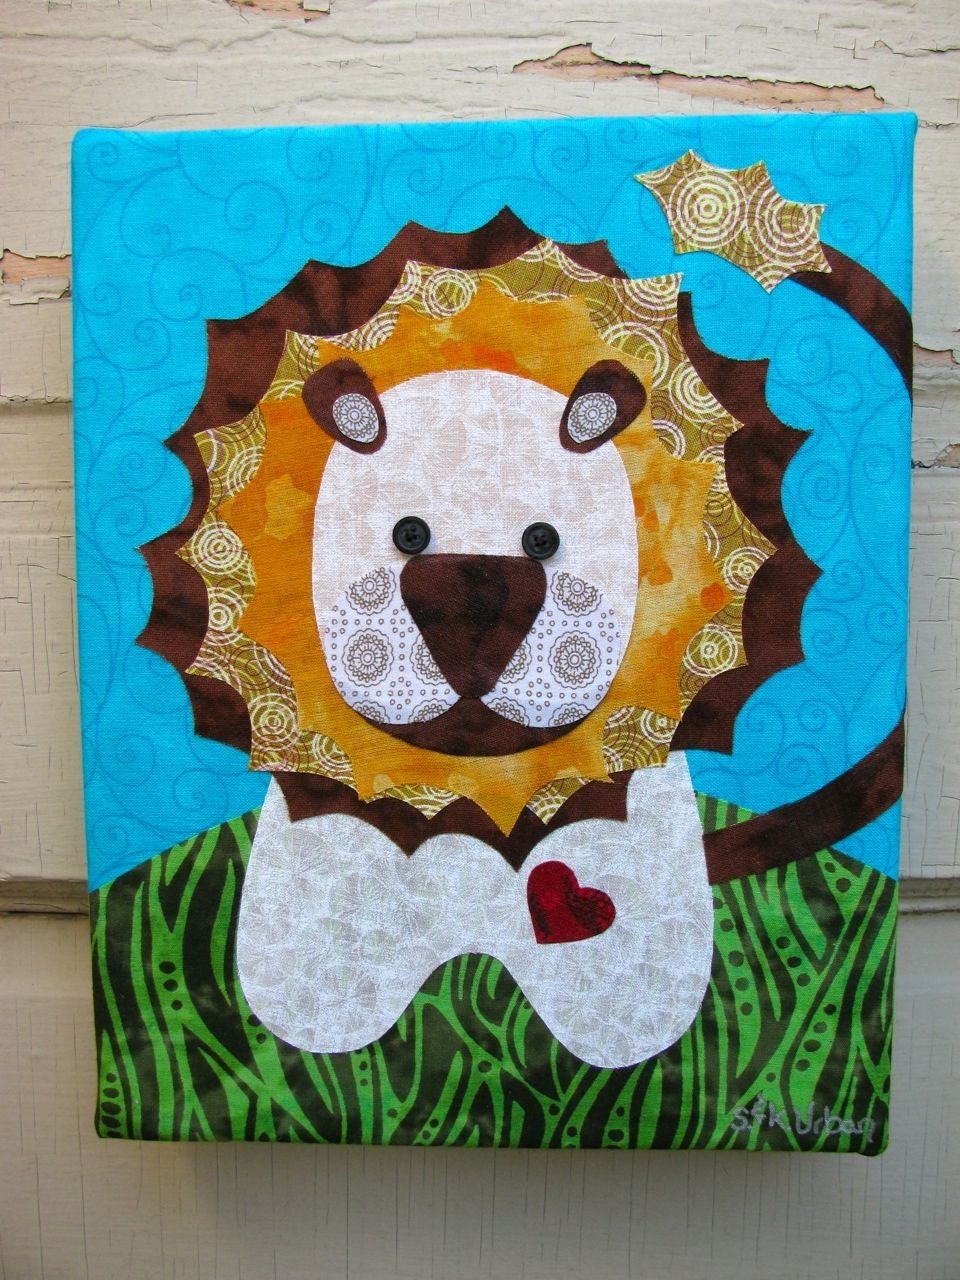 Little Lion - Fabric collage wall art - NO FRAME NEEDED